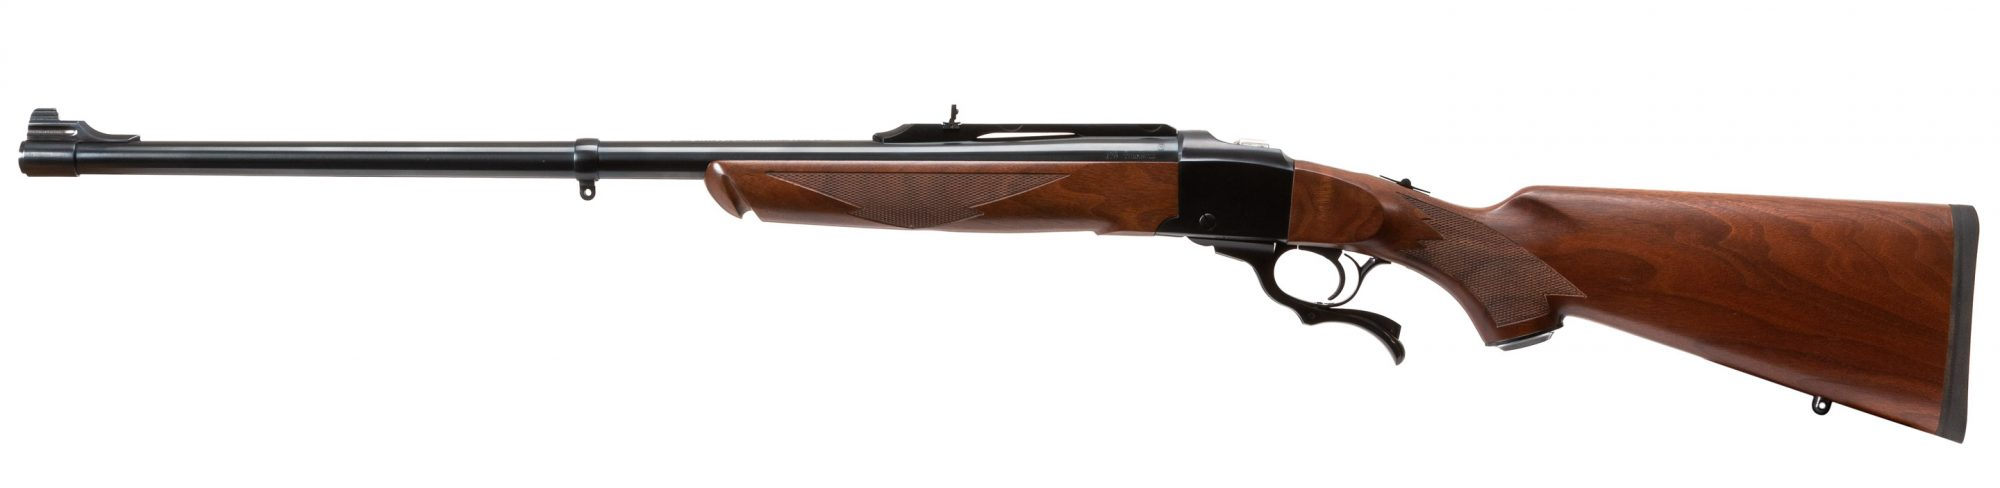 Photo of a pre-owned Ruger No. 1 chambered in .475 Turnbull